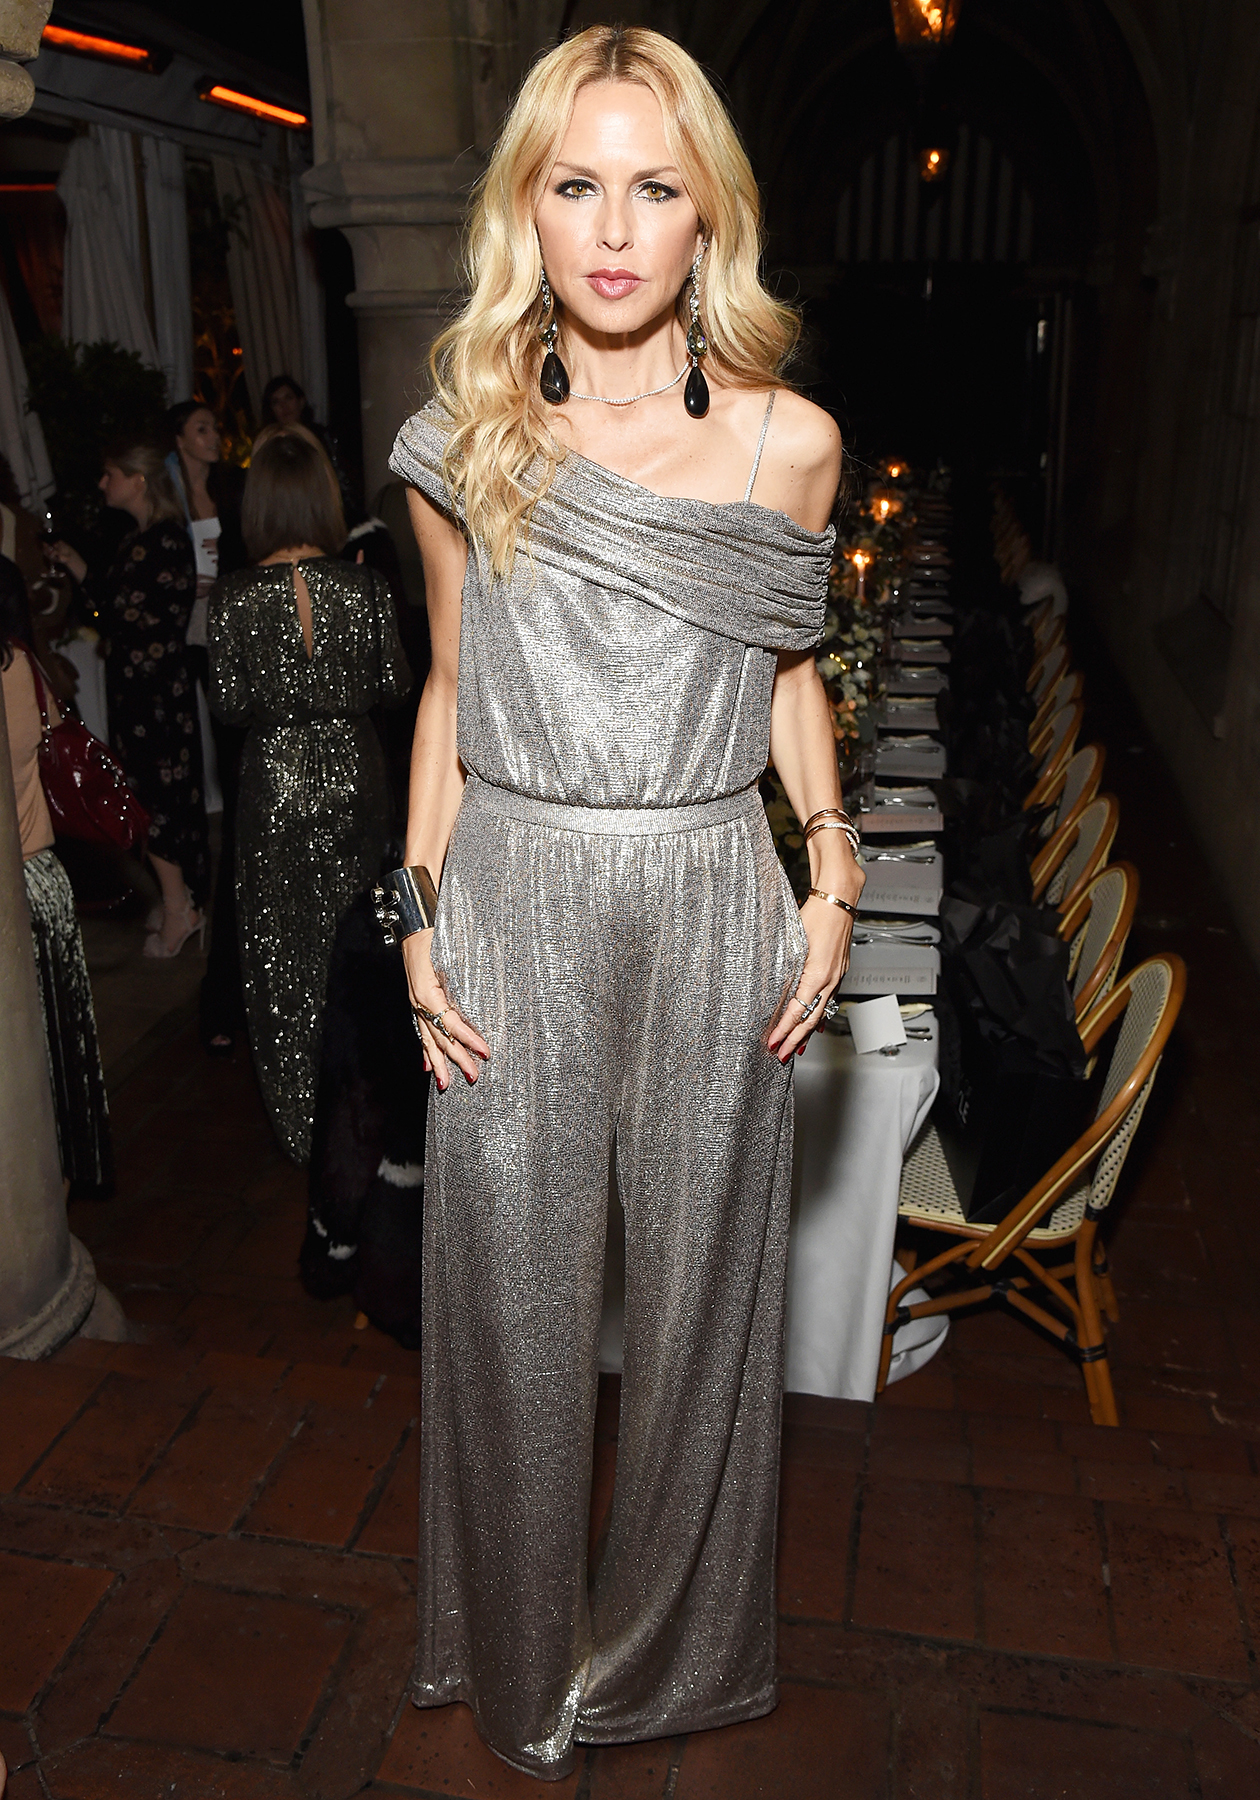 Rachel Zoe on Her Late-Night Shopping Habits and the One Thing She'll NeverWear Rachel Zoe on Her Late-Night Shopping Habits and the One Thing She'll NeverWear new foto